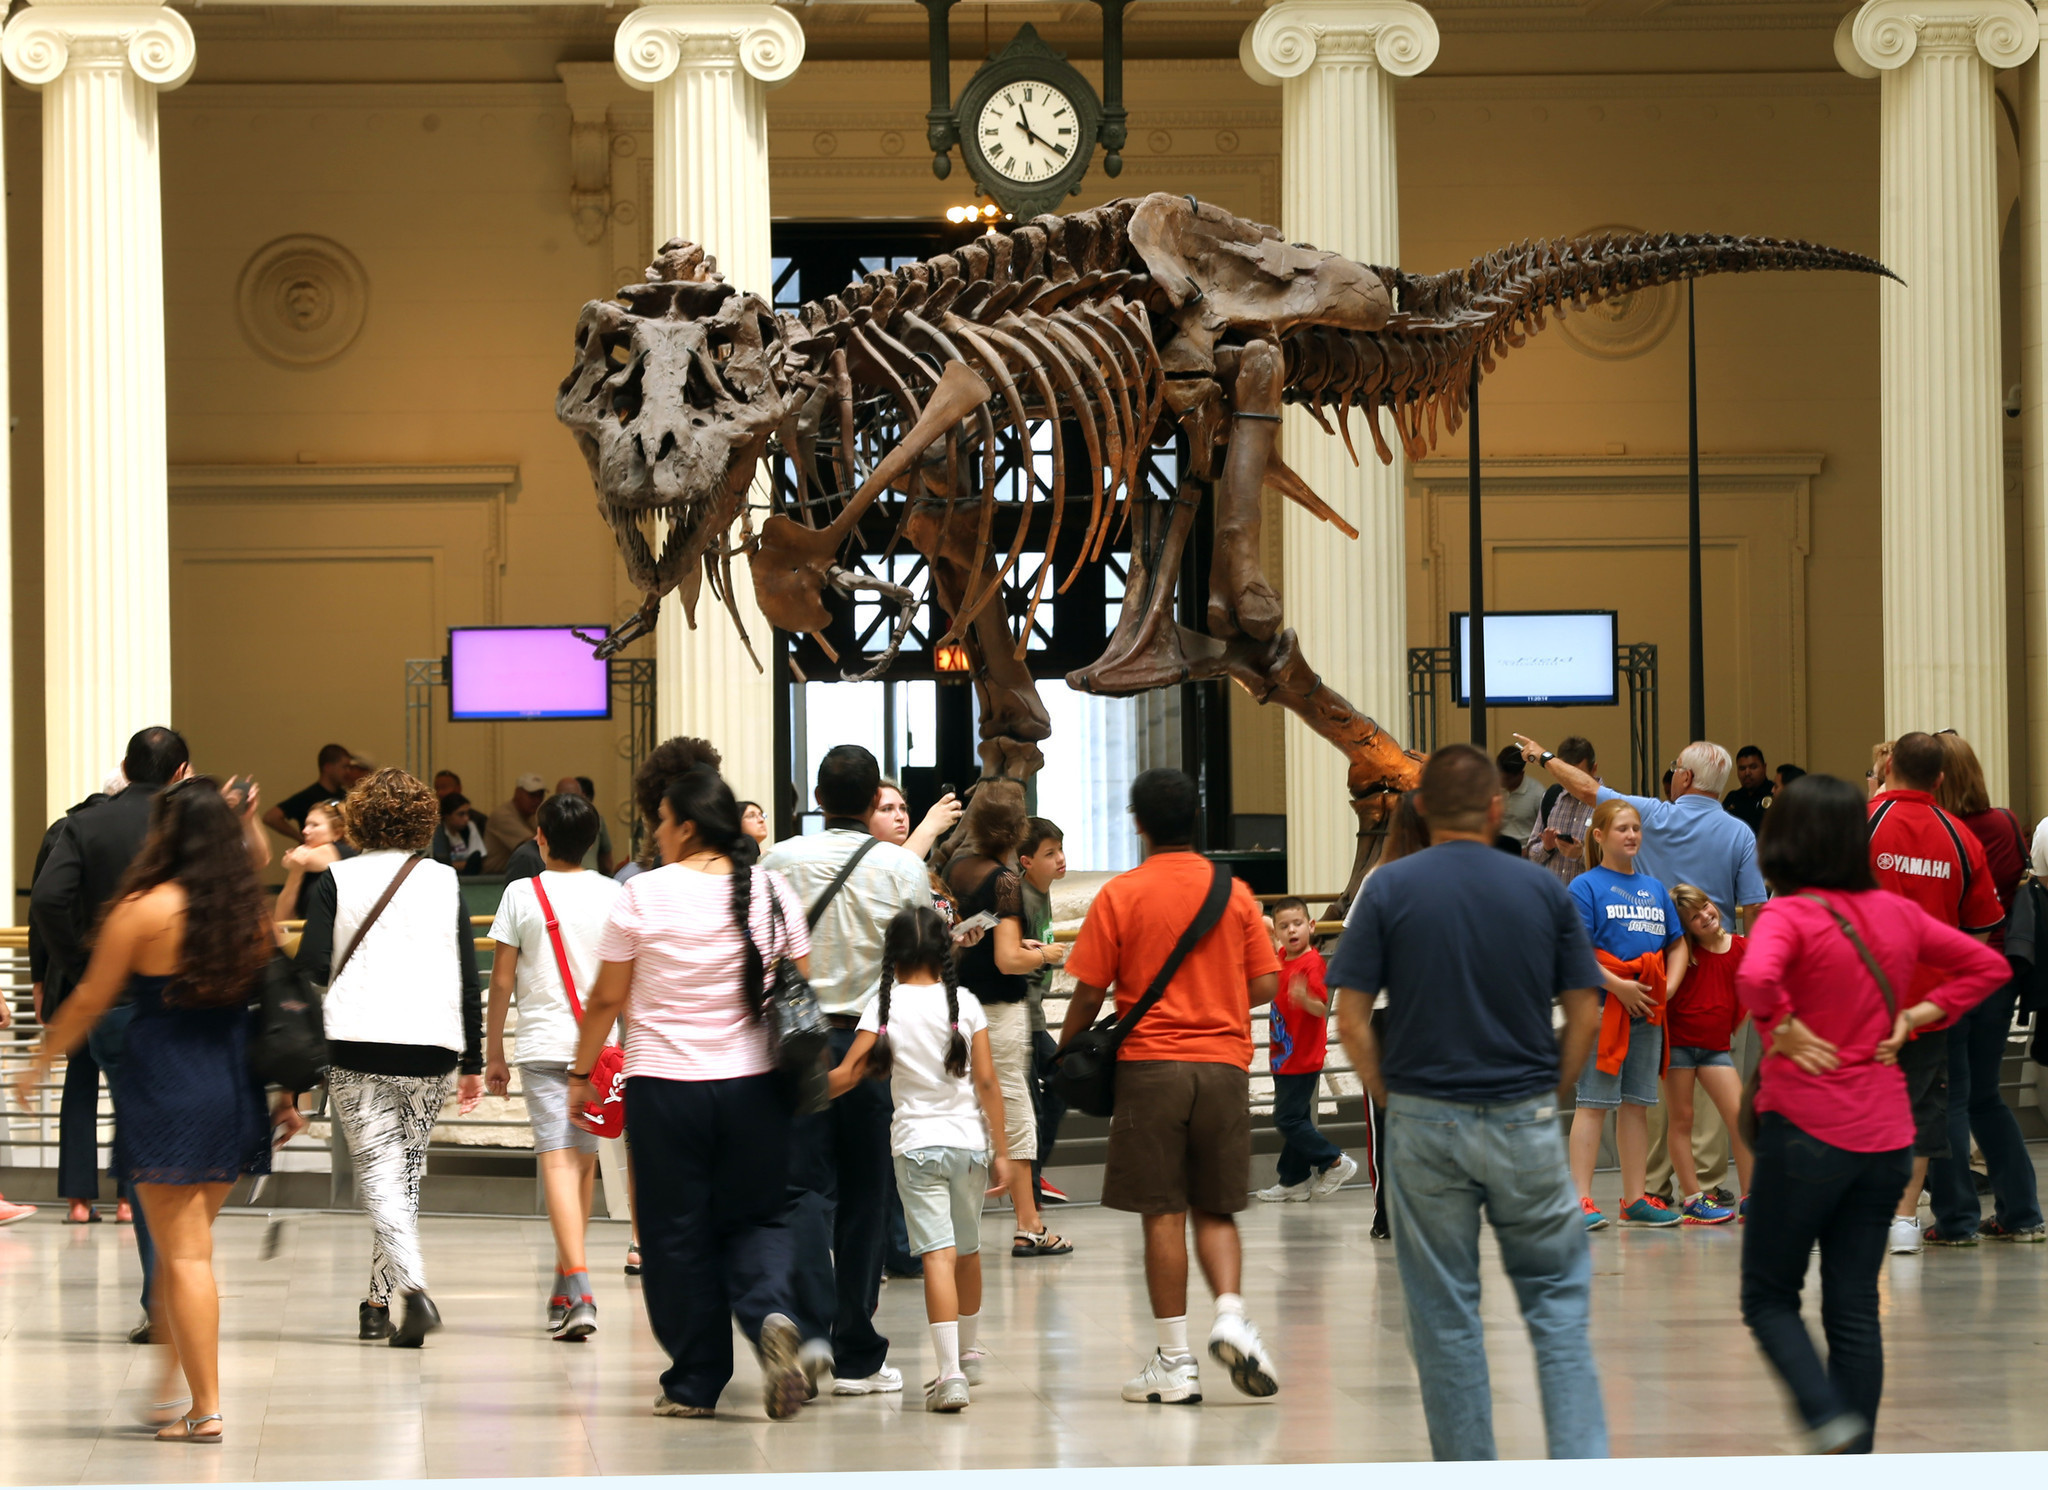 documentary on trex sue leads to pardon push for